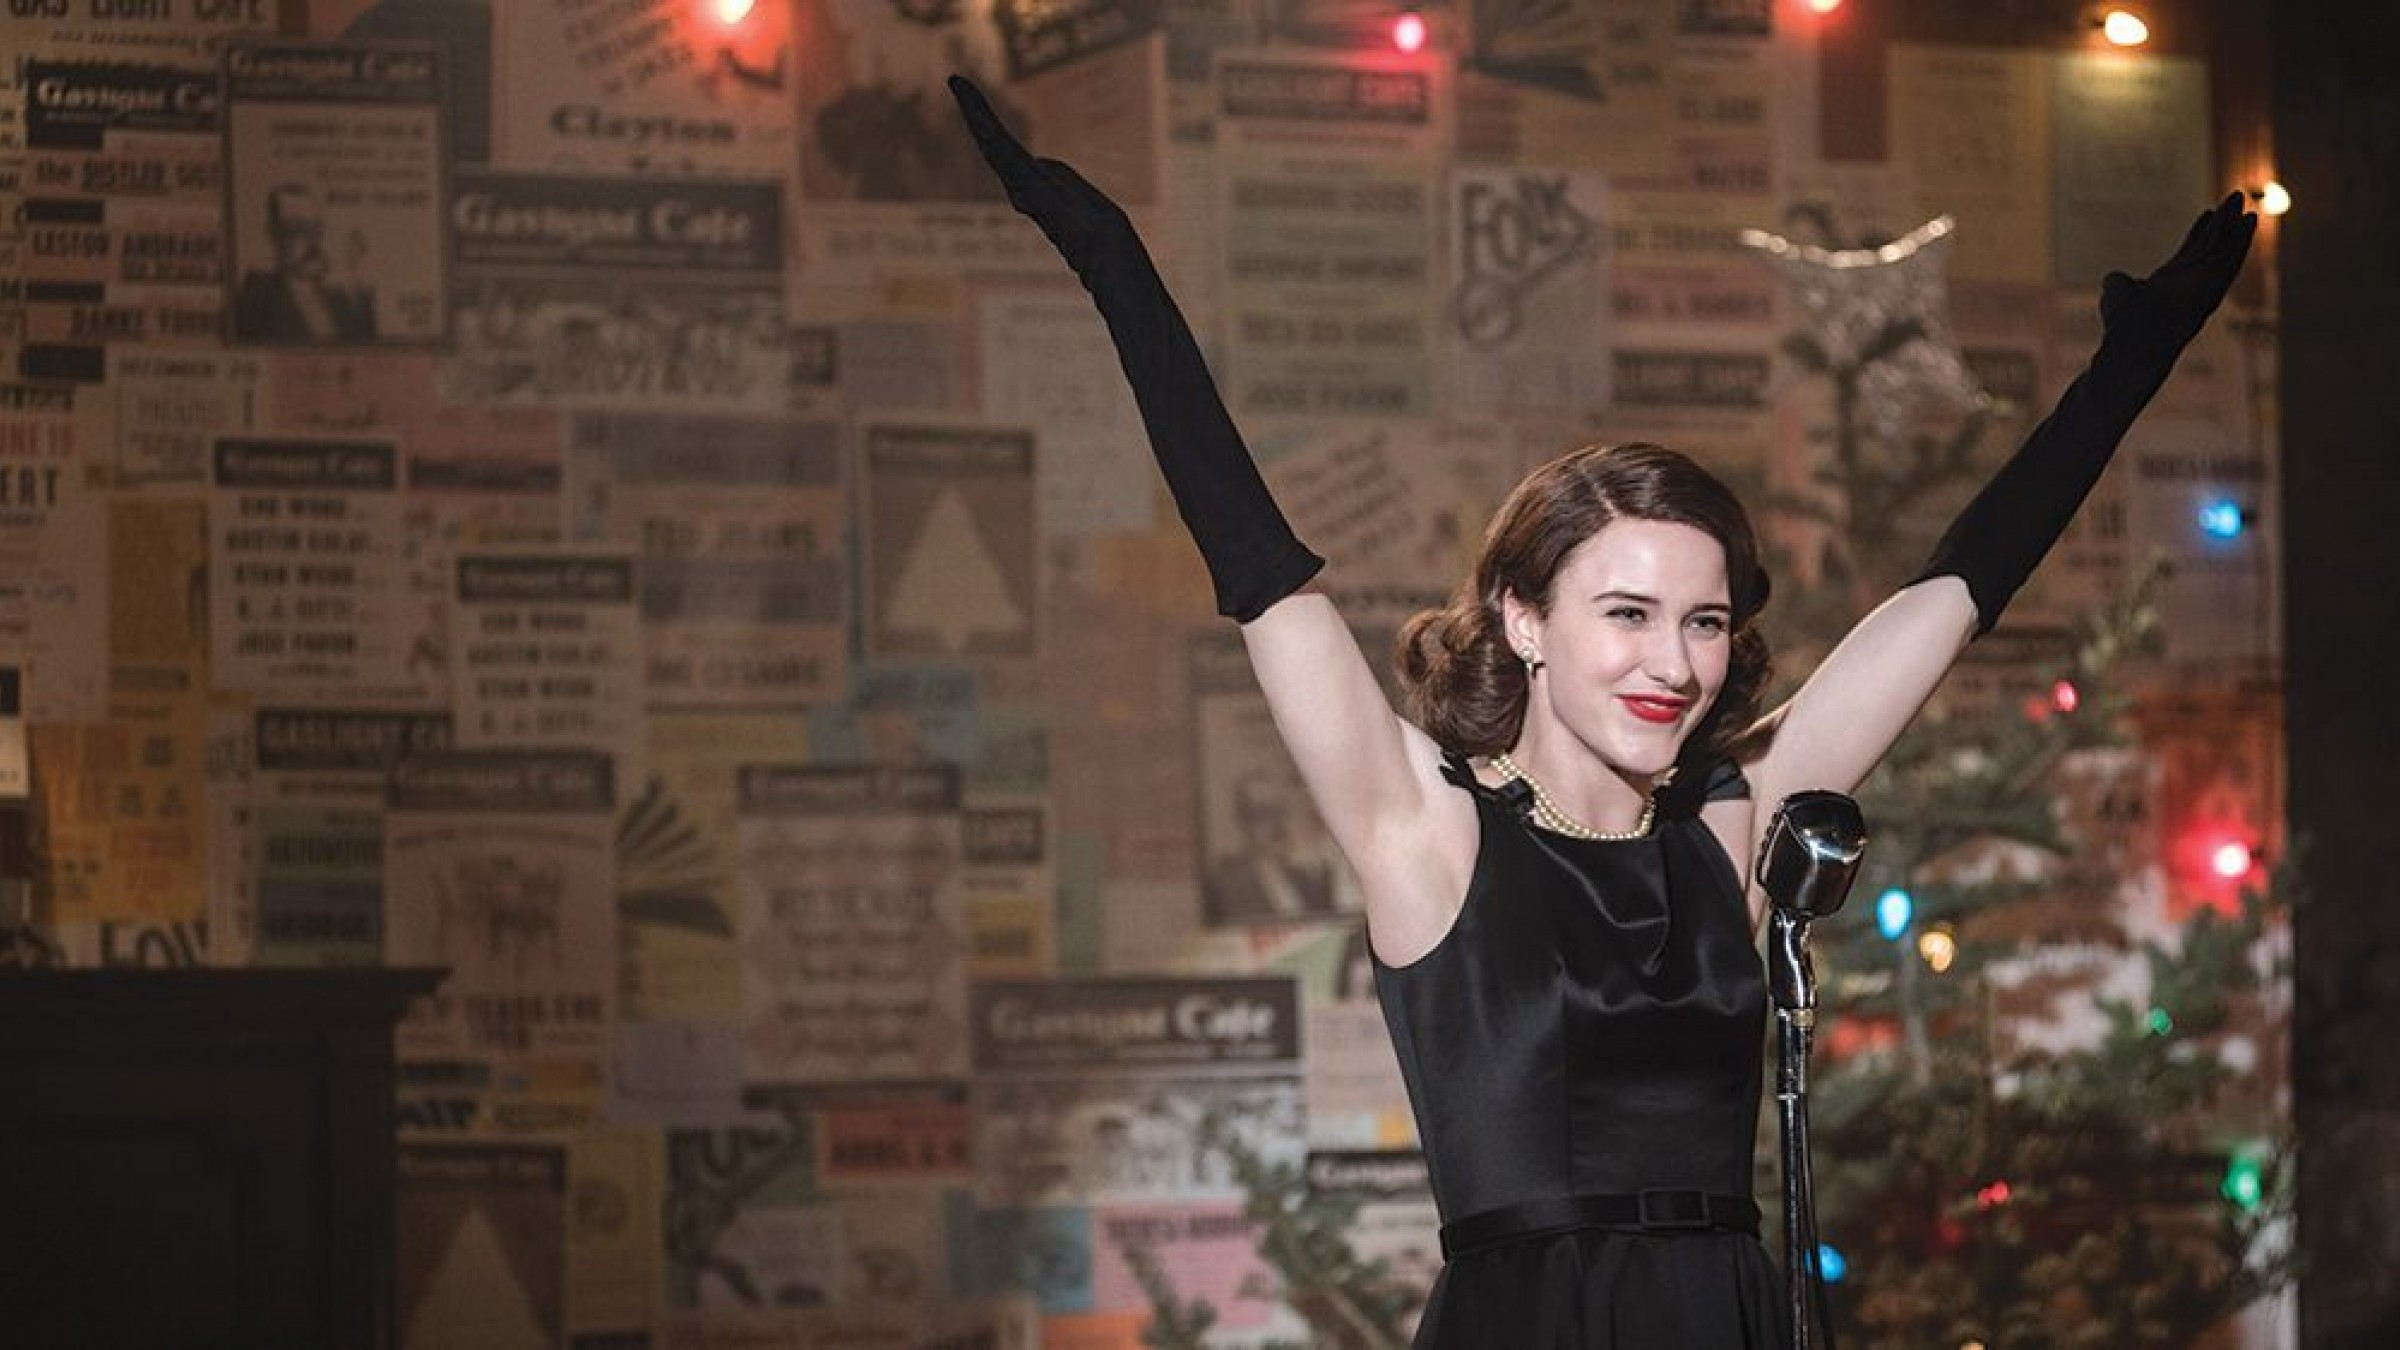 How to Create a Oner like 'The Marvelous Mrs. Maisel'